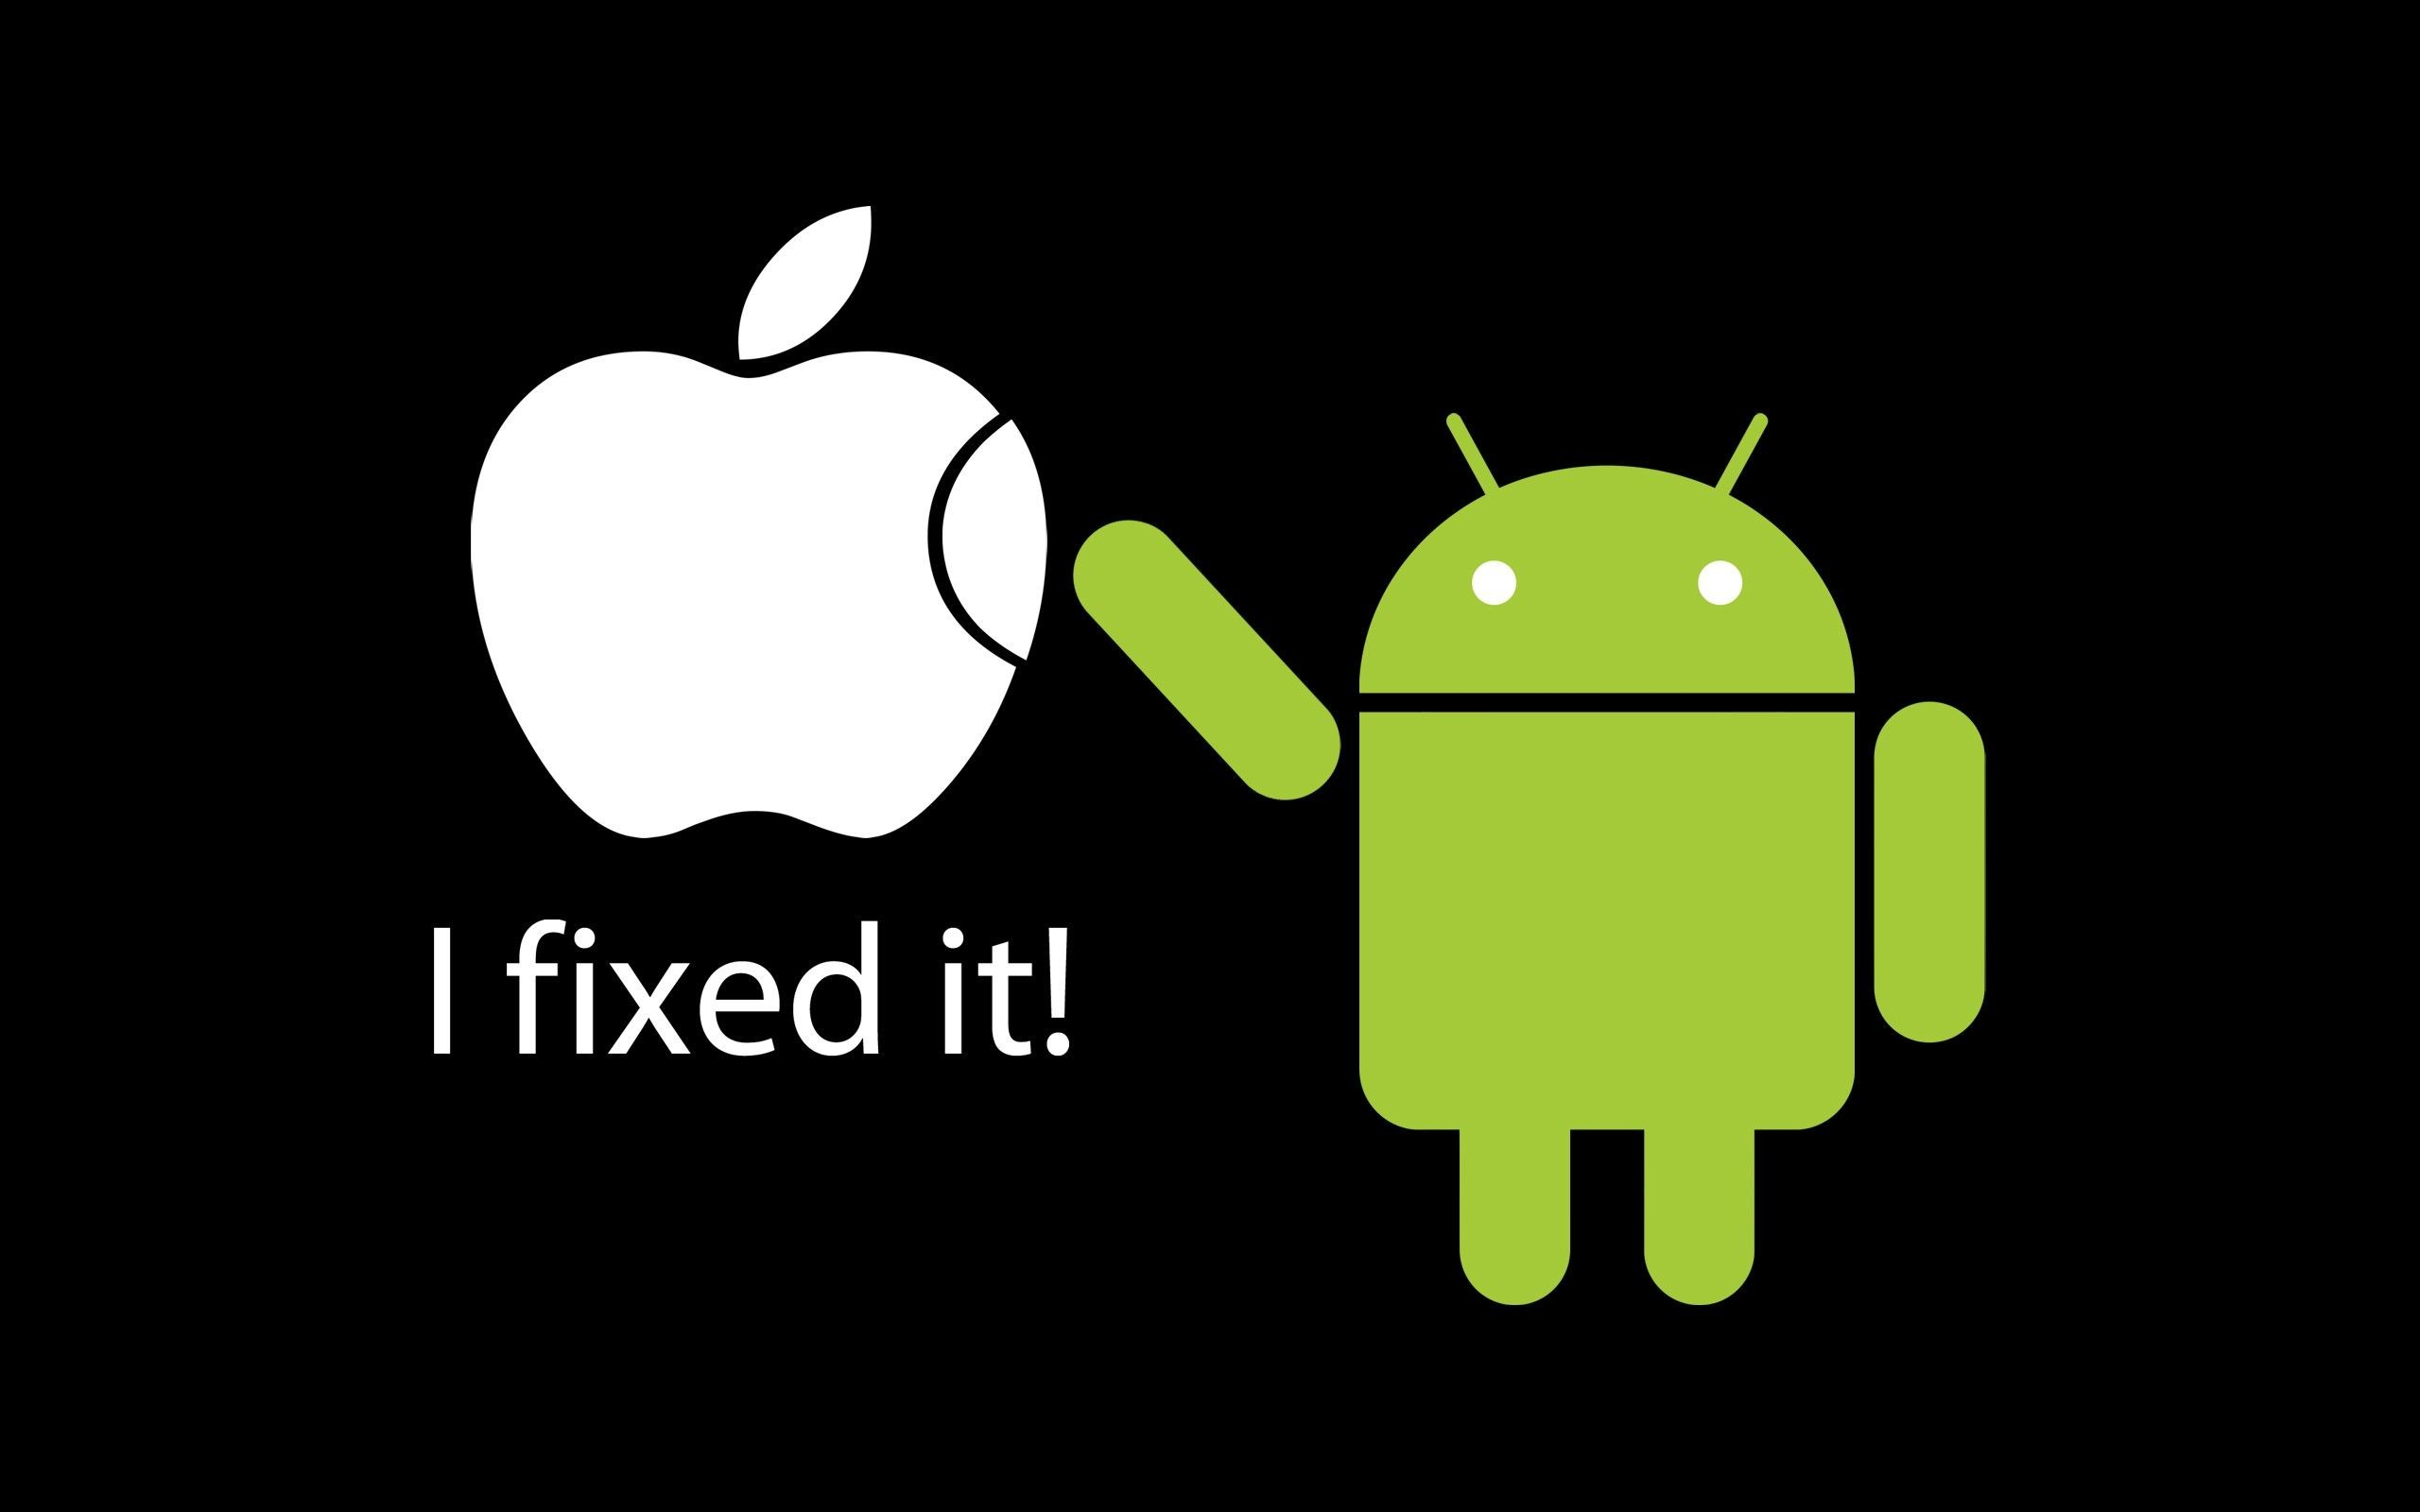 2560x1600 funny wallpapers apple vs android Funny wallpaper for your desktop and  mobile tablet.